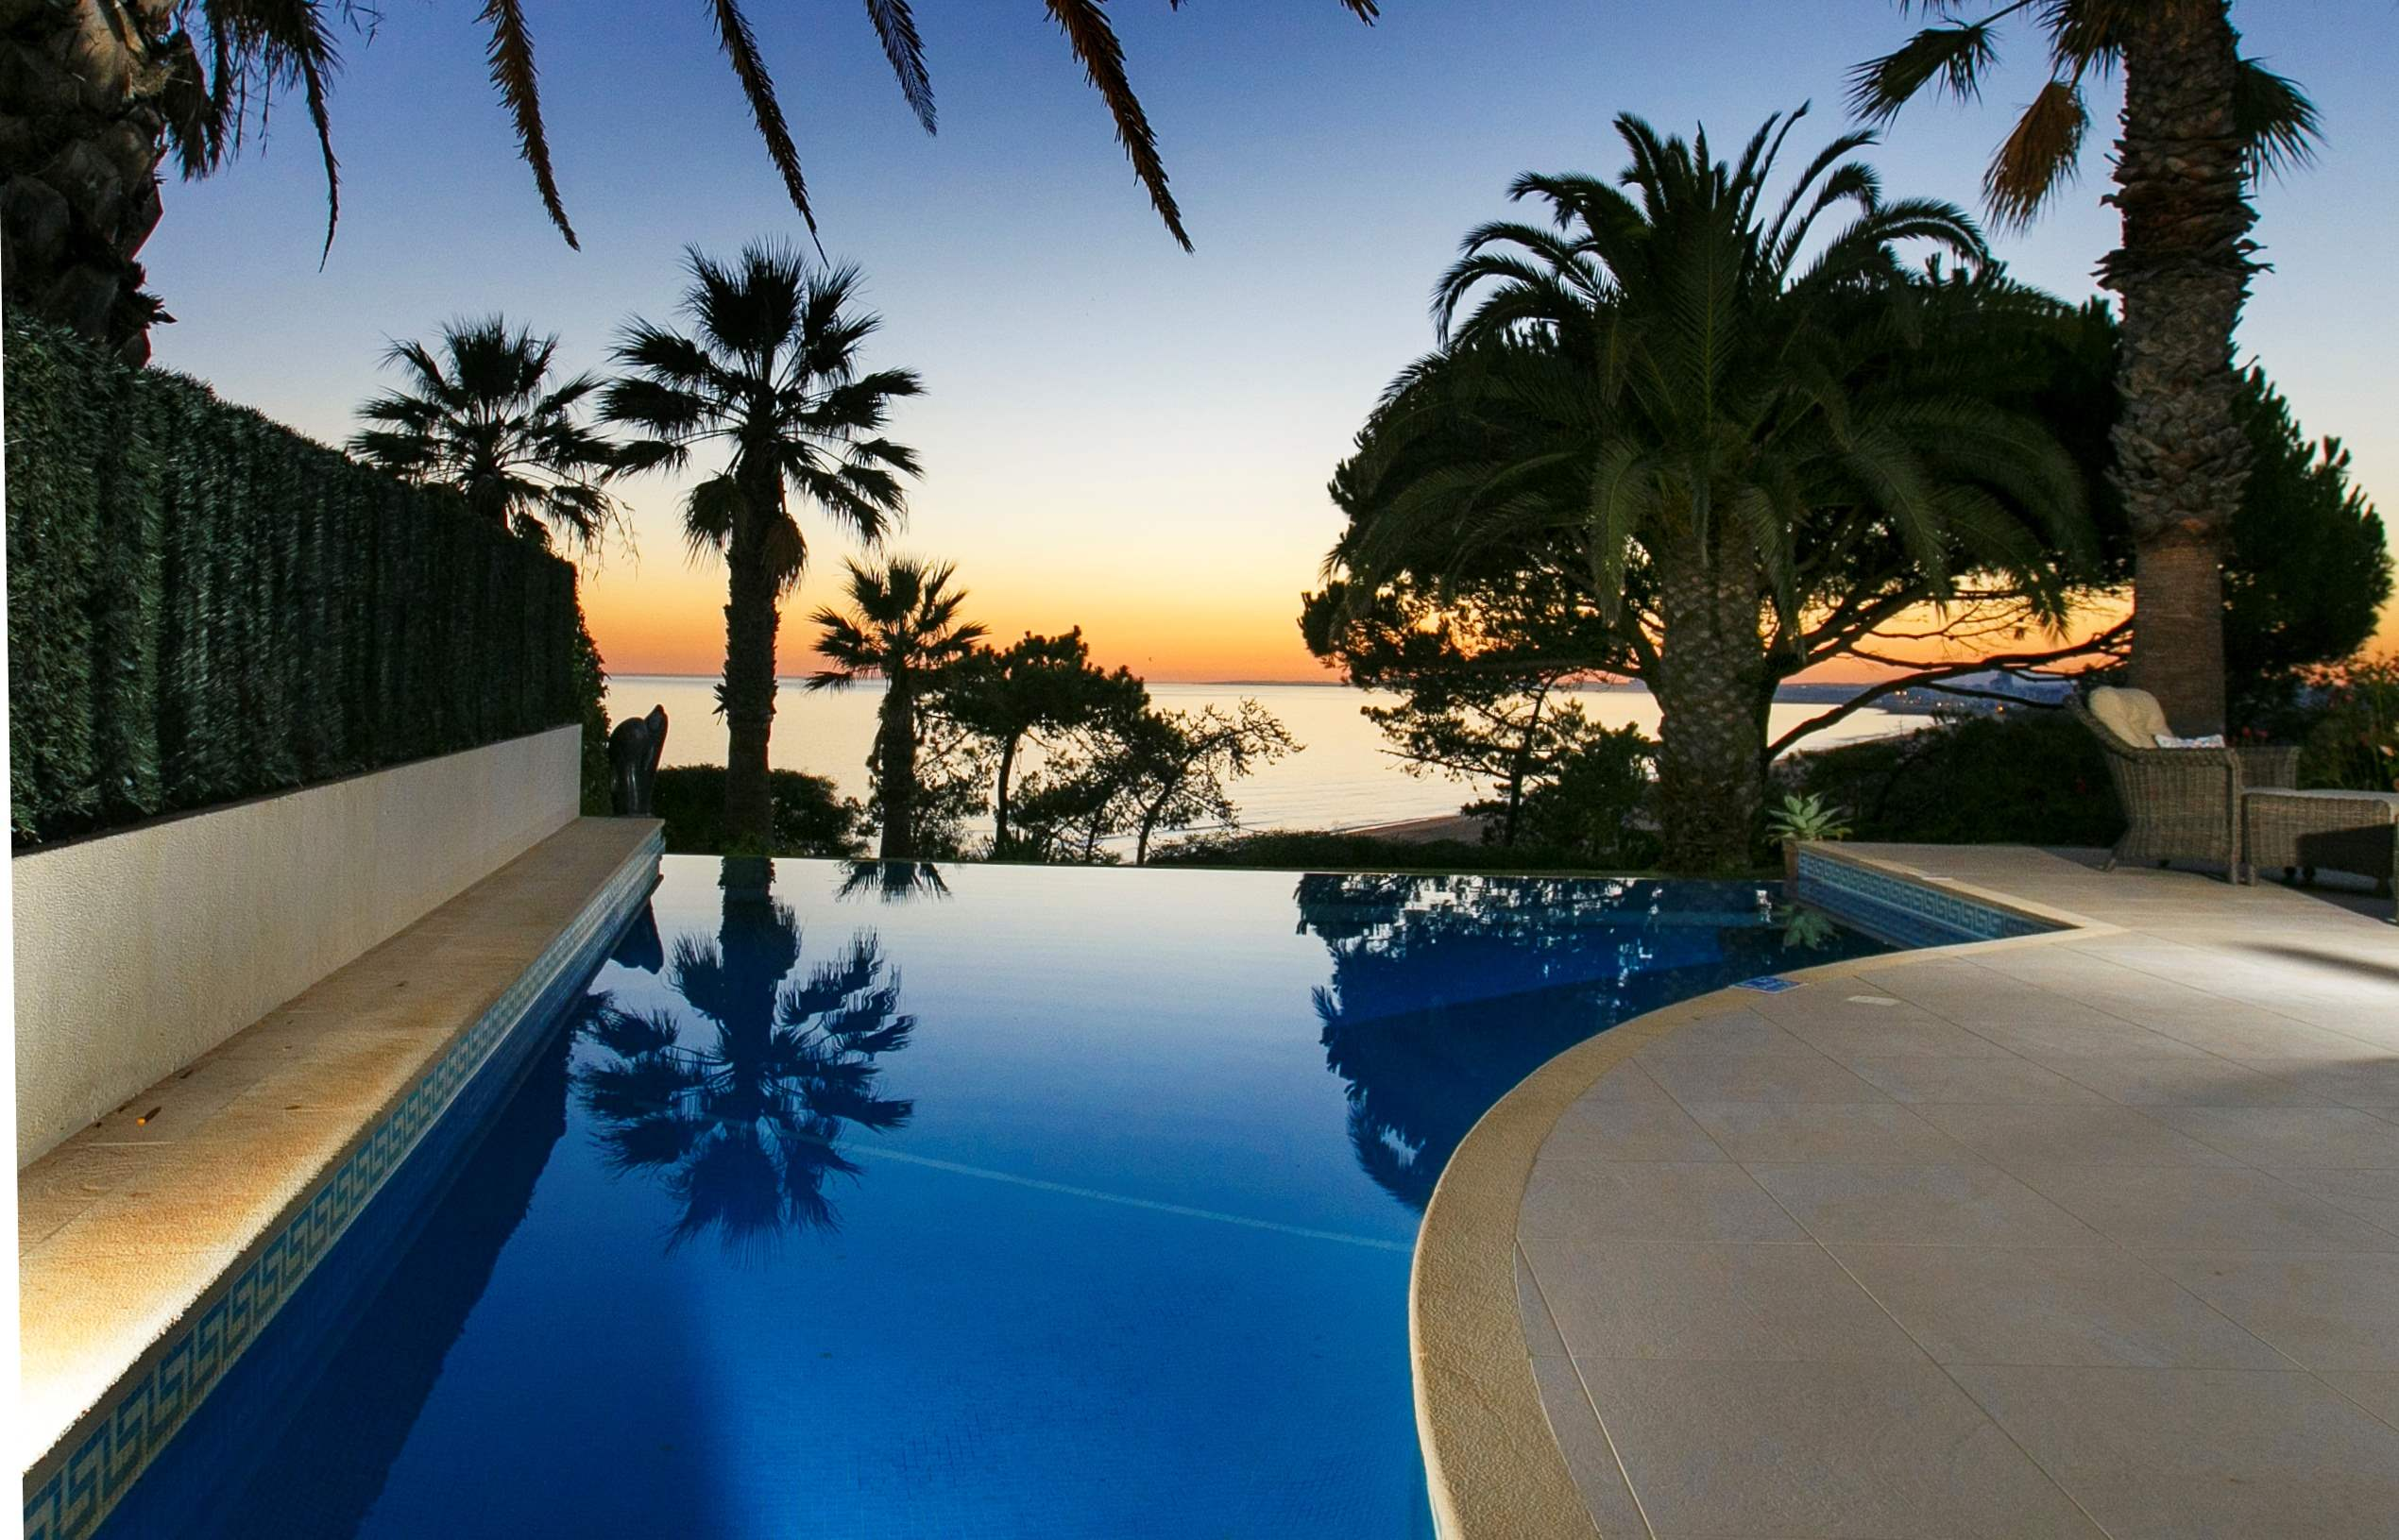 Villa Ocean Beach, 4 bedroom villa in Vale do Lobo, Algarve Photo #17